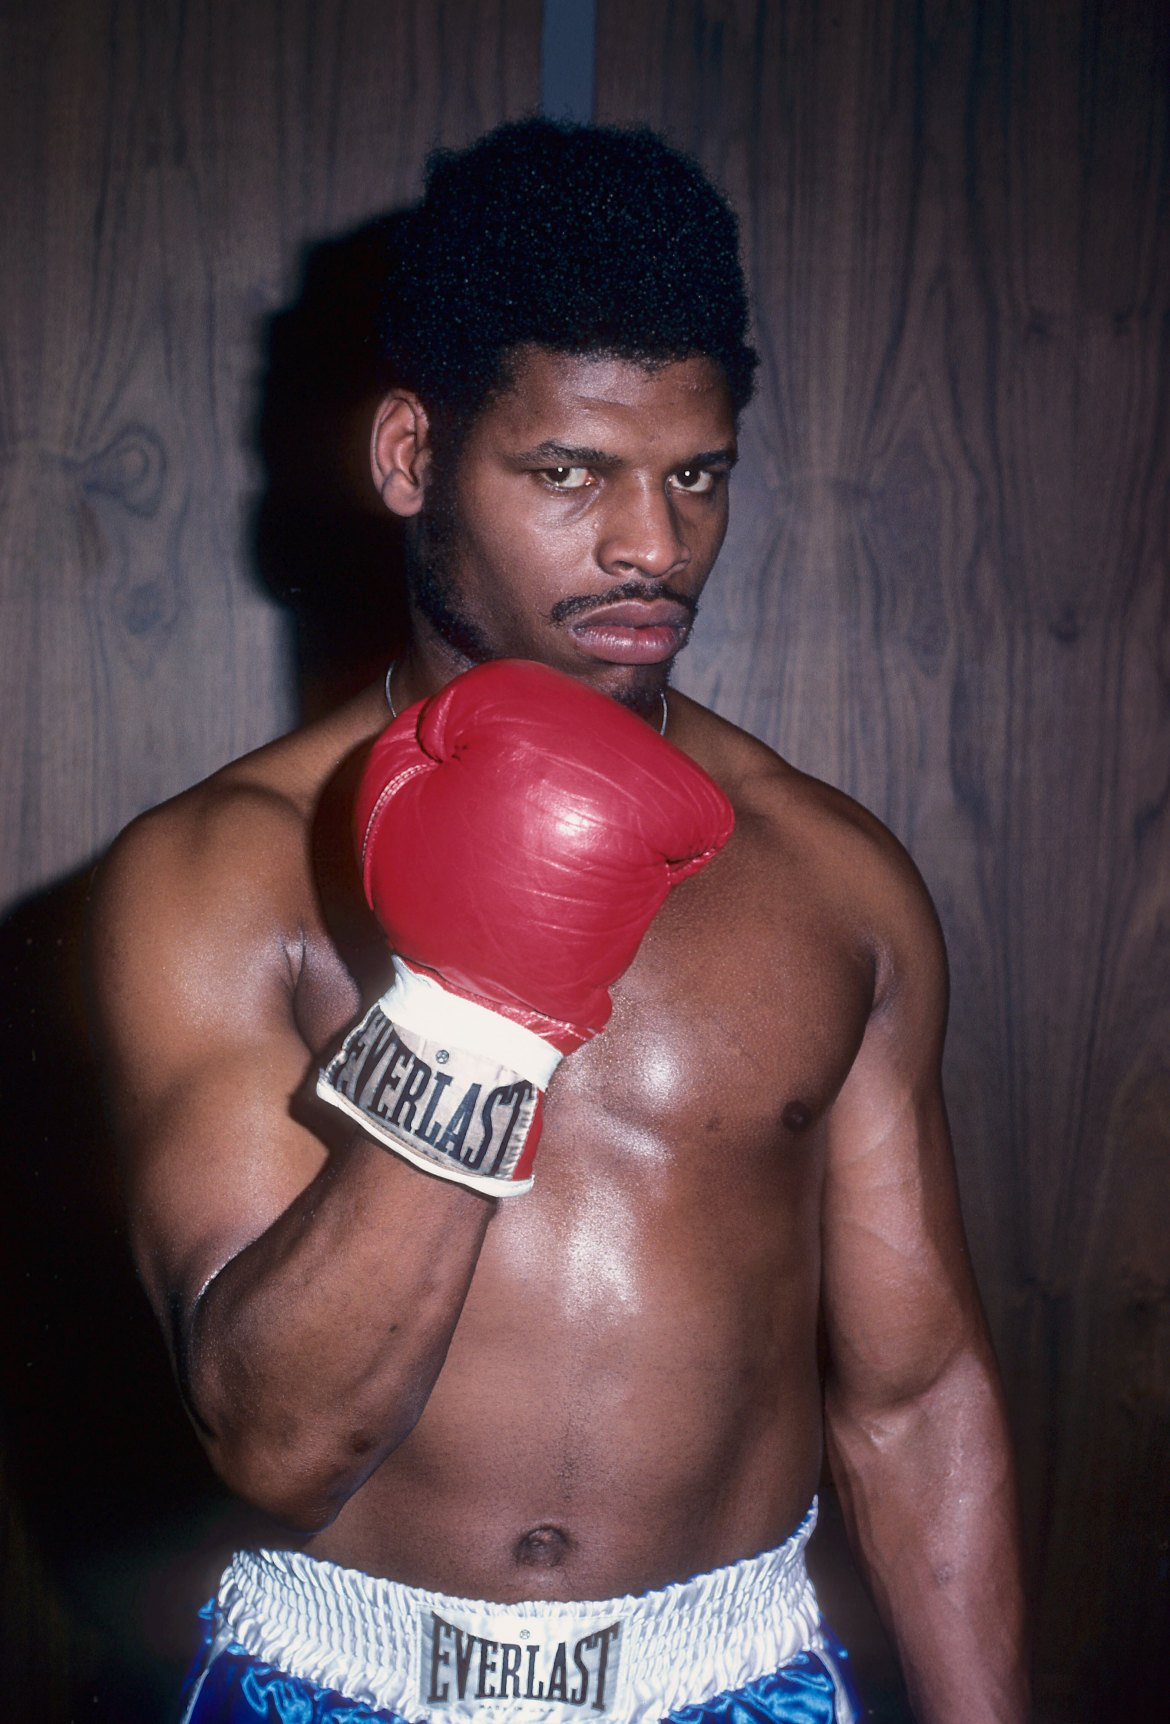 Leon Spinks has died at the age of 67 after a long battle against cancer